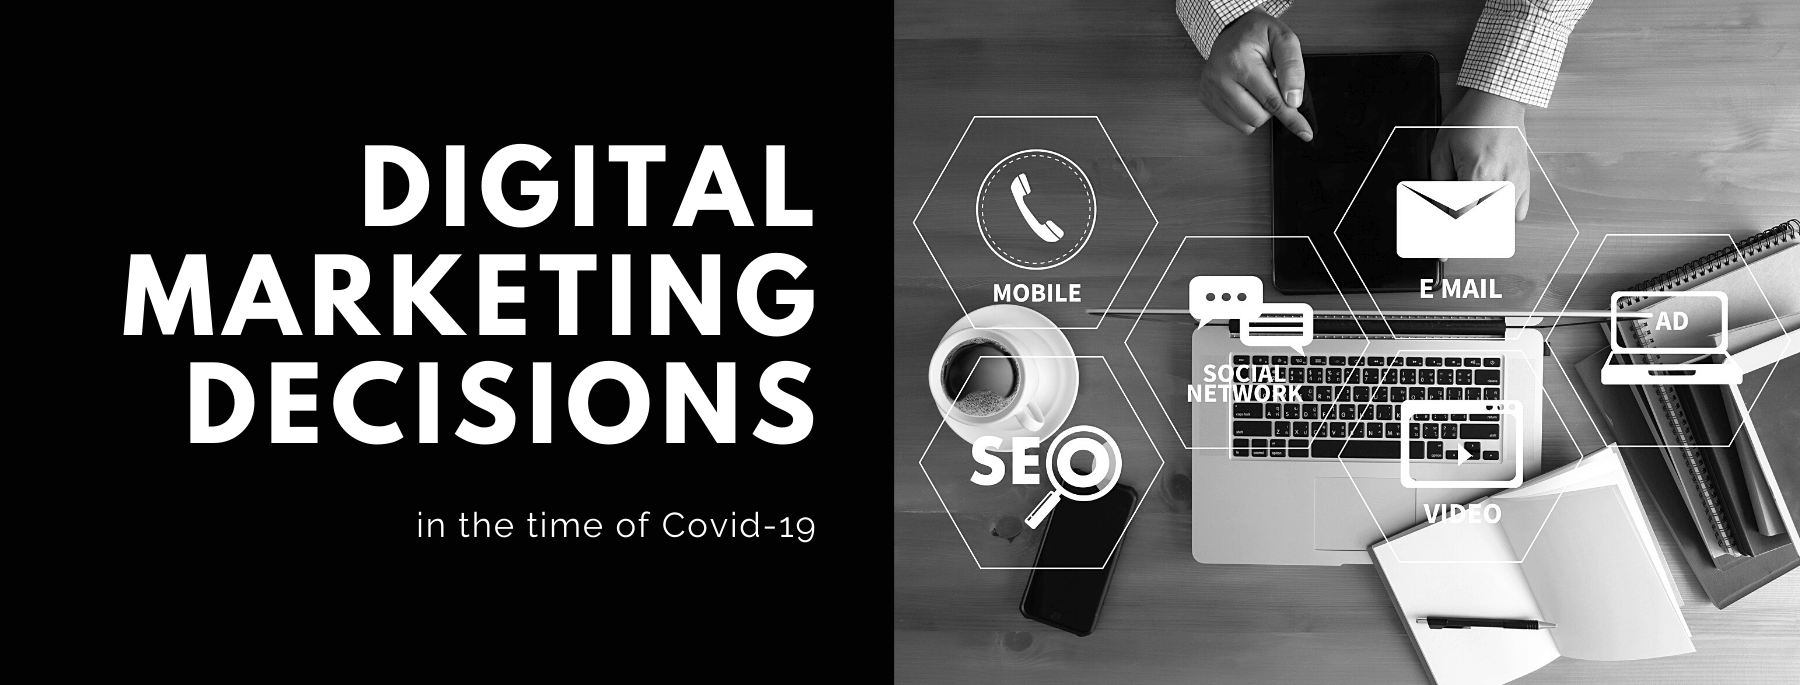 Critical Digital Marketing Decisions to Make During COVID-19